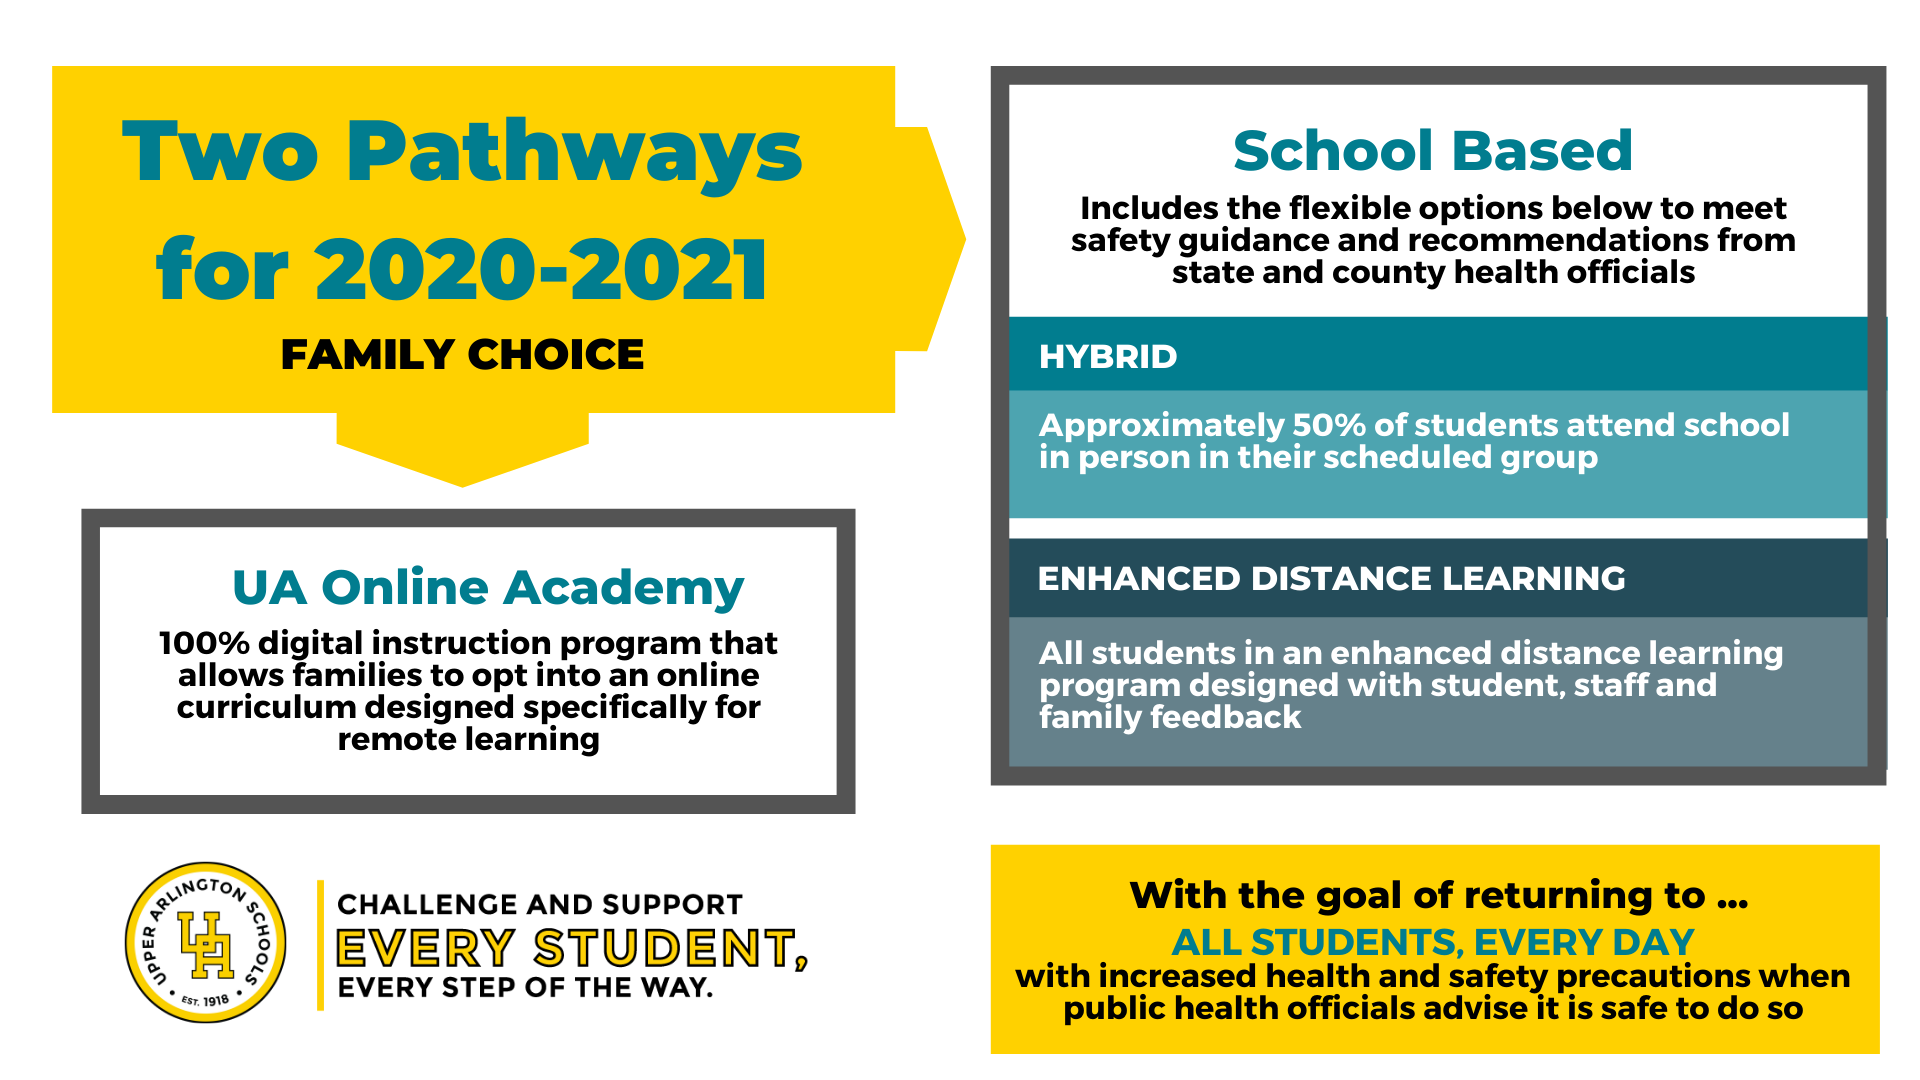 Two pathways for 2020-2021 school year